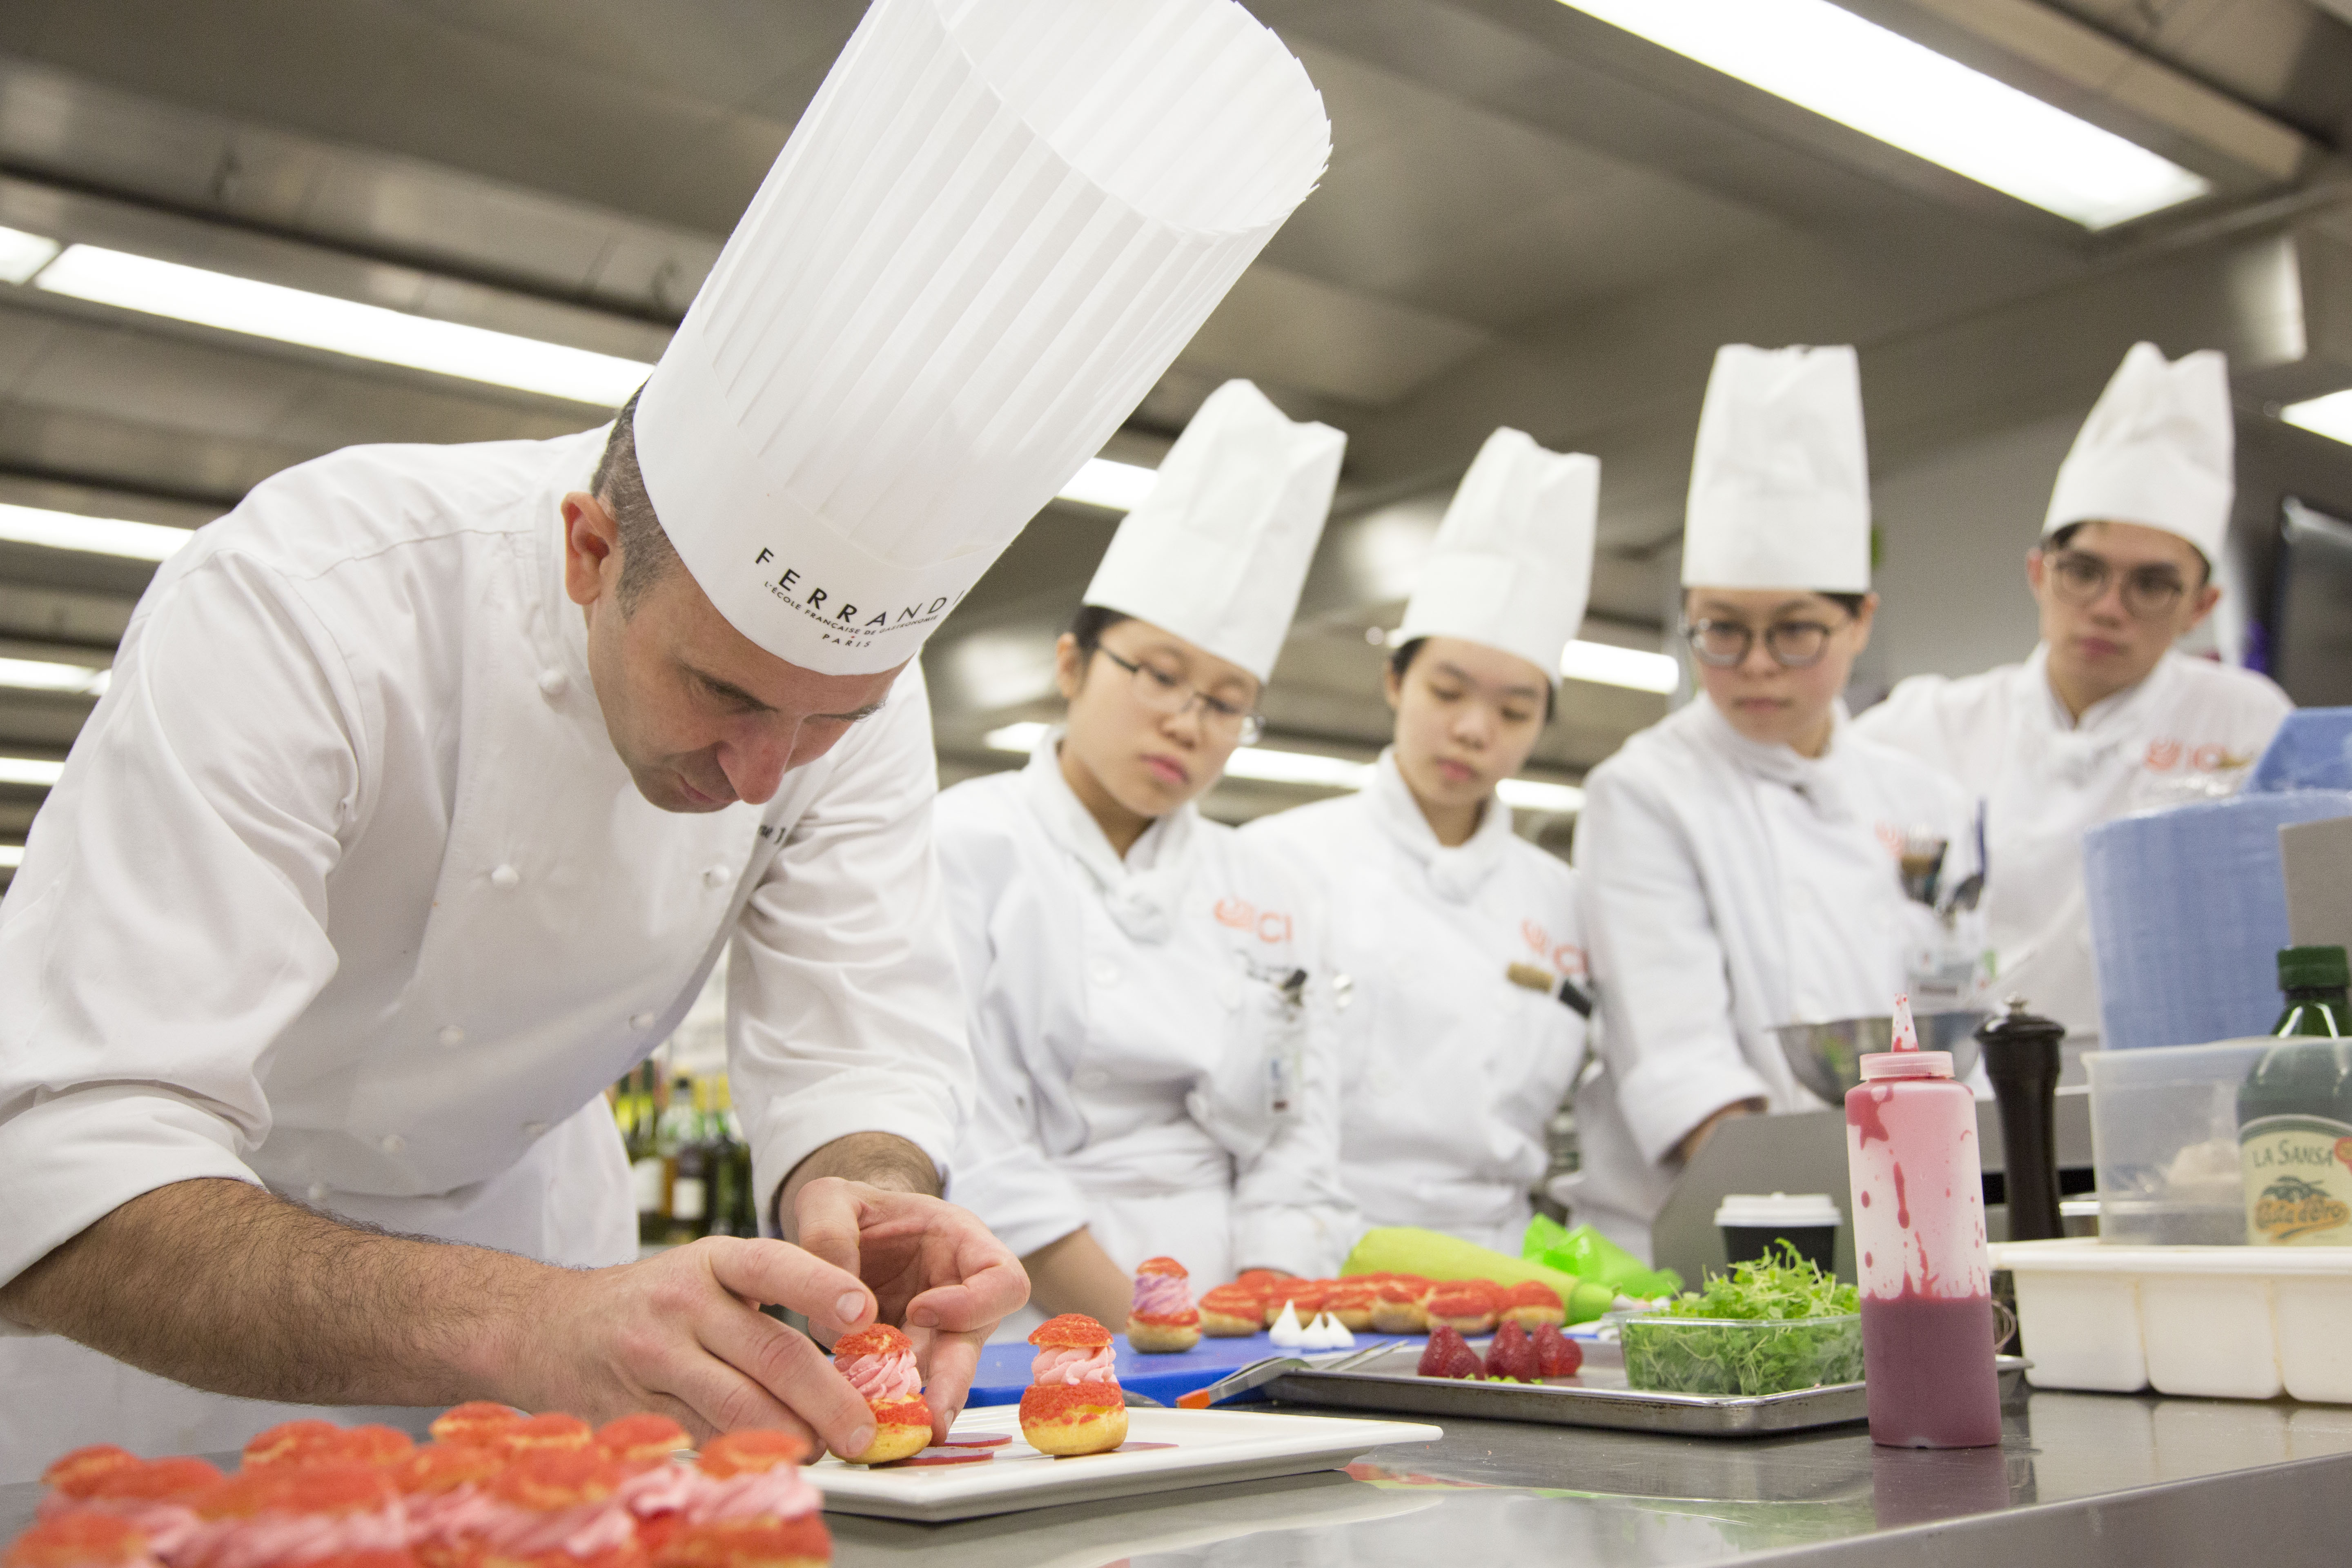 FERRANDI Paris offers a nine-day Certificate in Contemporary French Cuisine programme with ICI